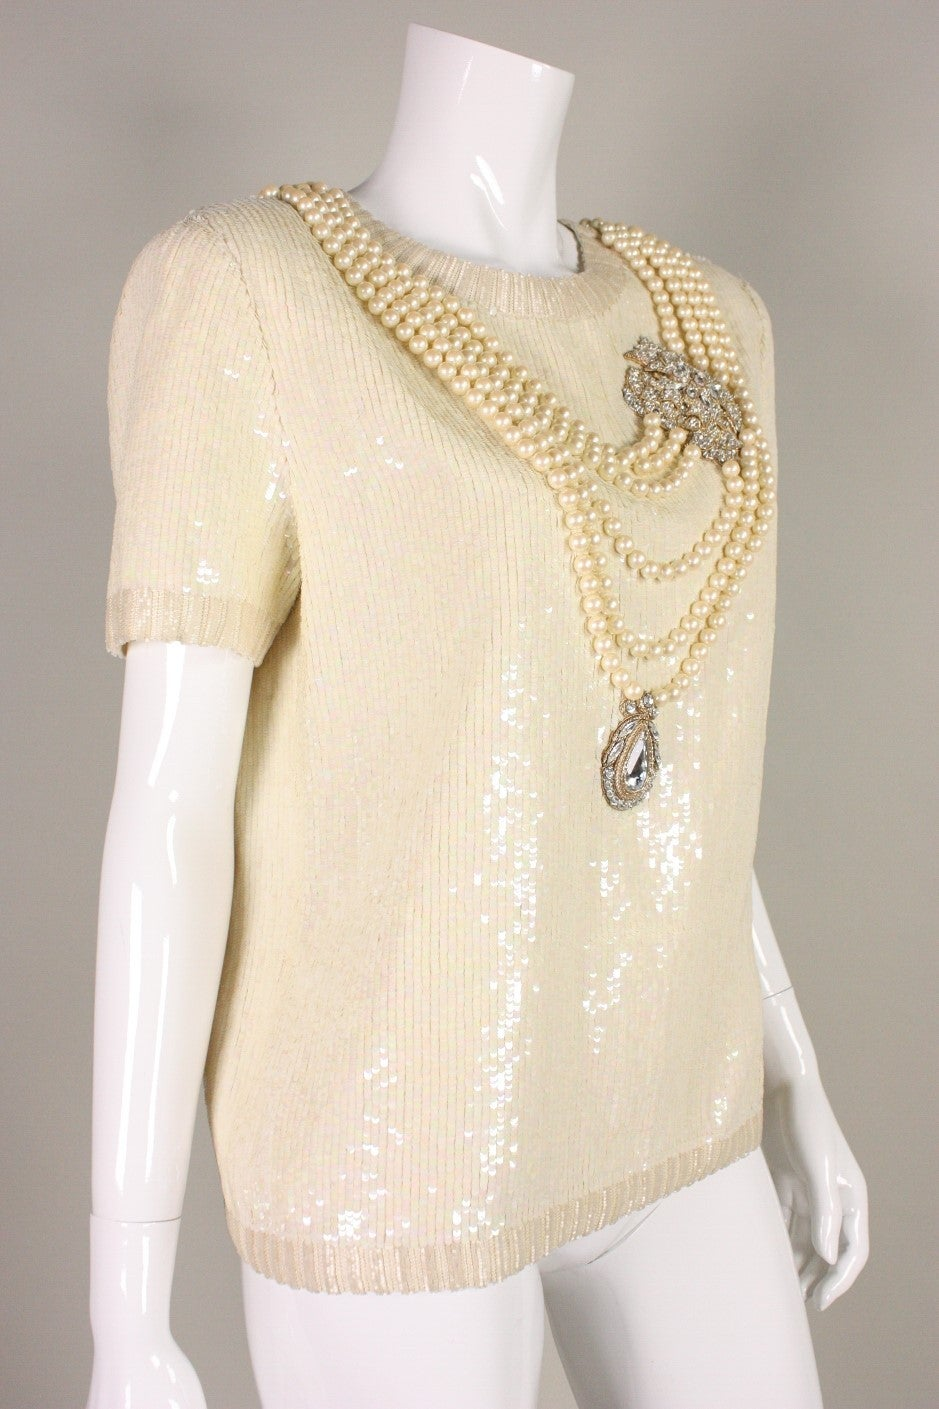 Vintage Bill Blass Sequined Encrusted Blouse with Trompe l'Oiel Details 2